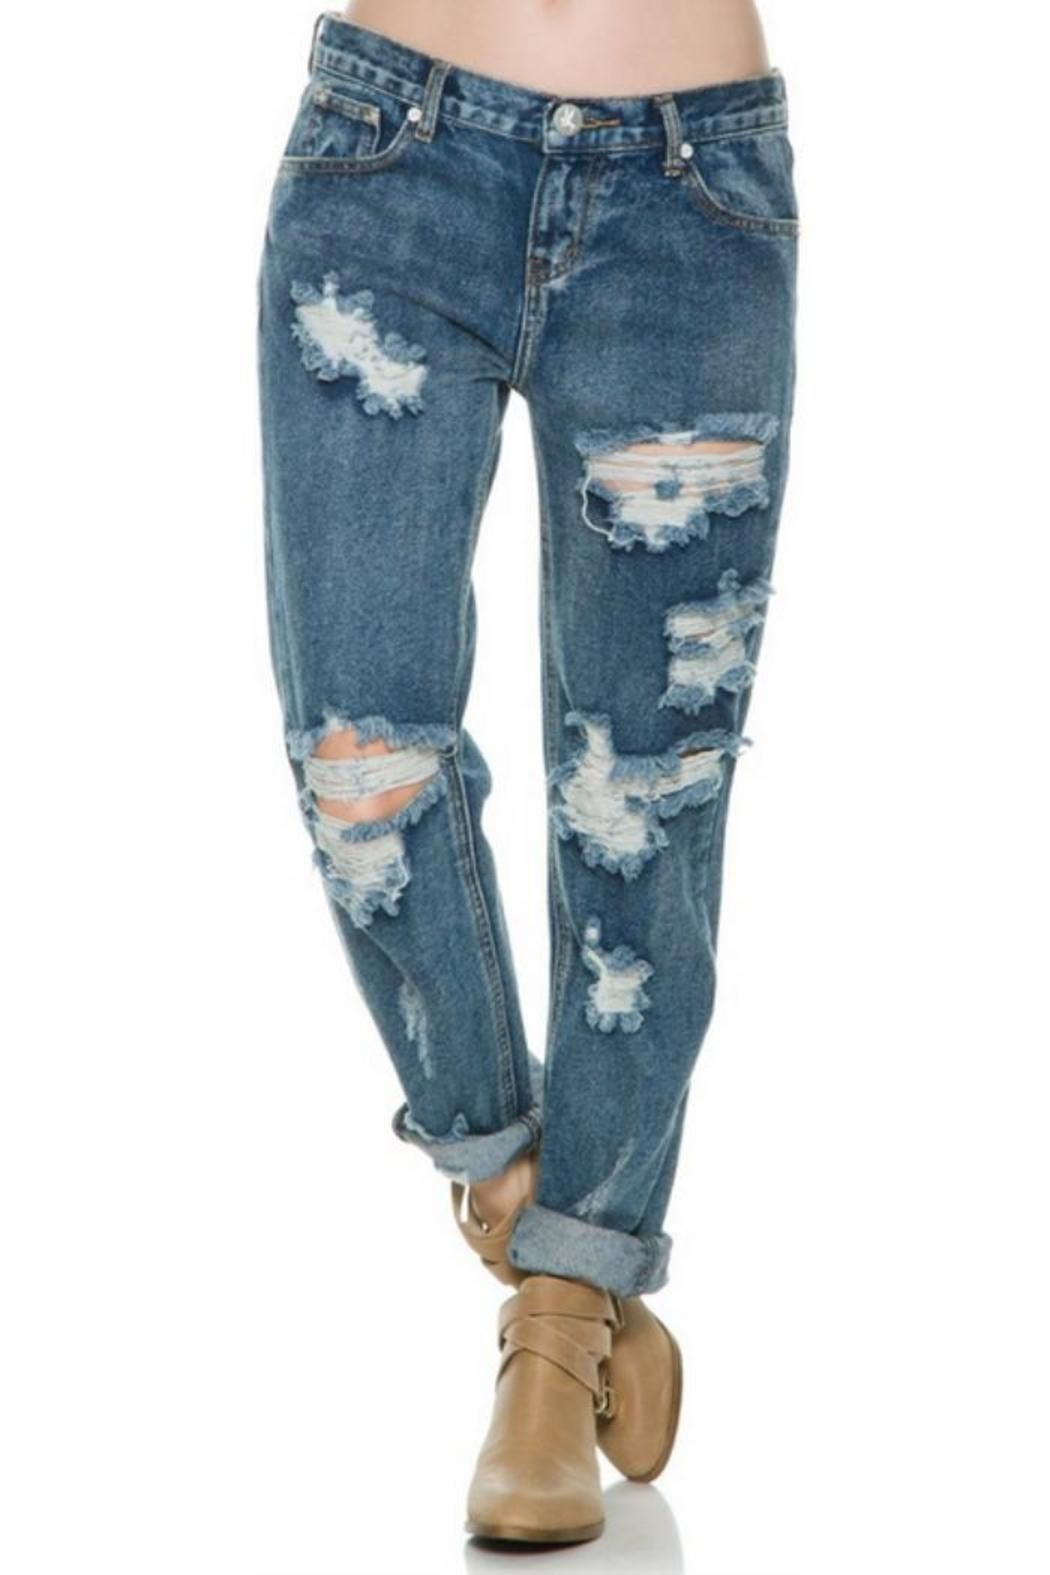 Five Pocket Boyfriend Jeans Relaxed Baggy Fit Tapering Toward Ankle Distressing And Ripped Detail Bottom Clothes Boyfriend Outfit Online Boutique Shopping